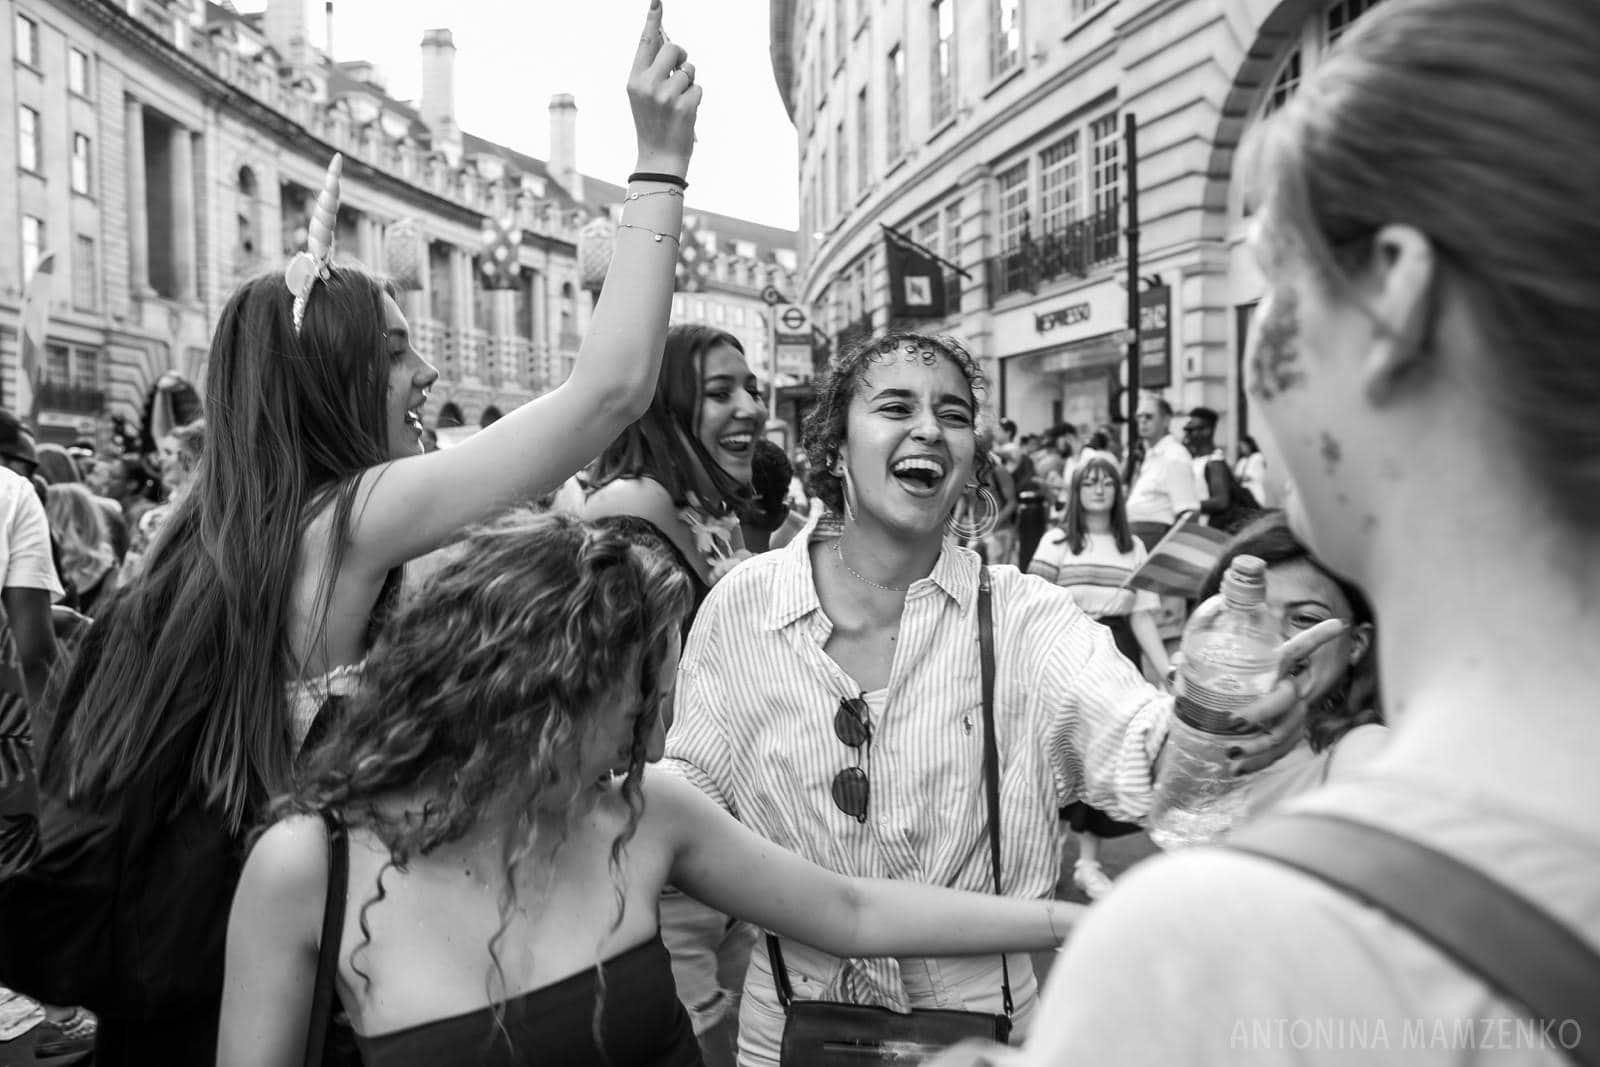 young women dancing on Regent's Street as part of London Pride parade 2018